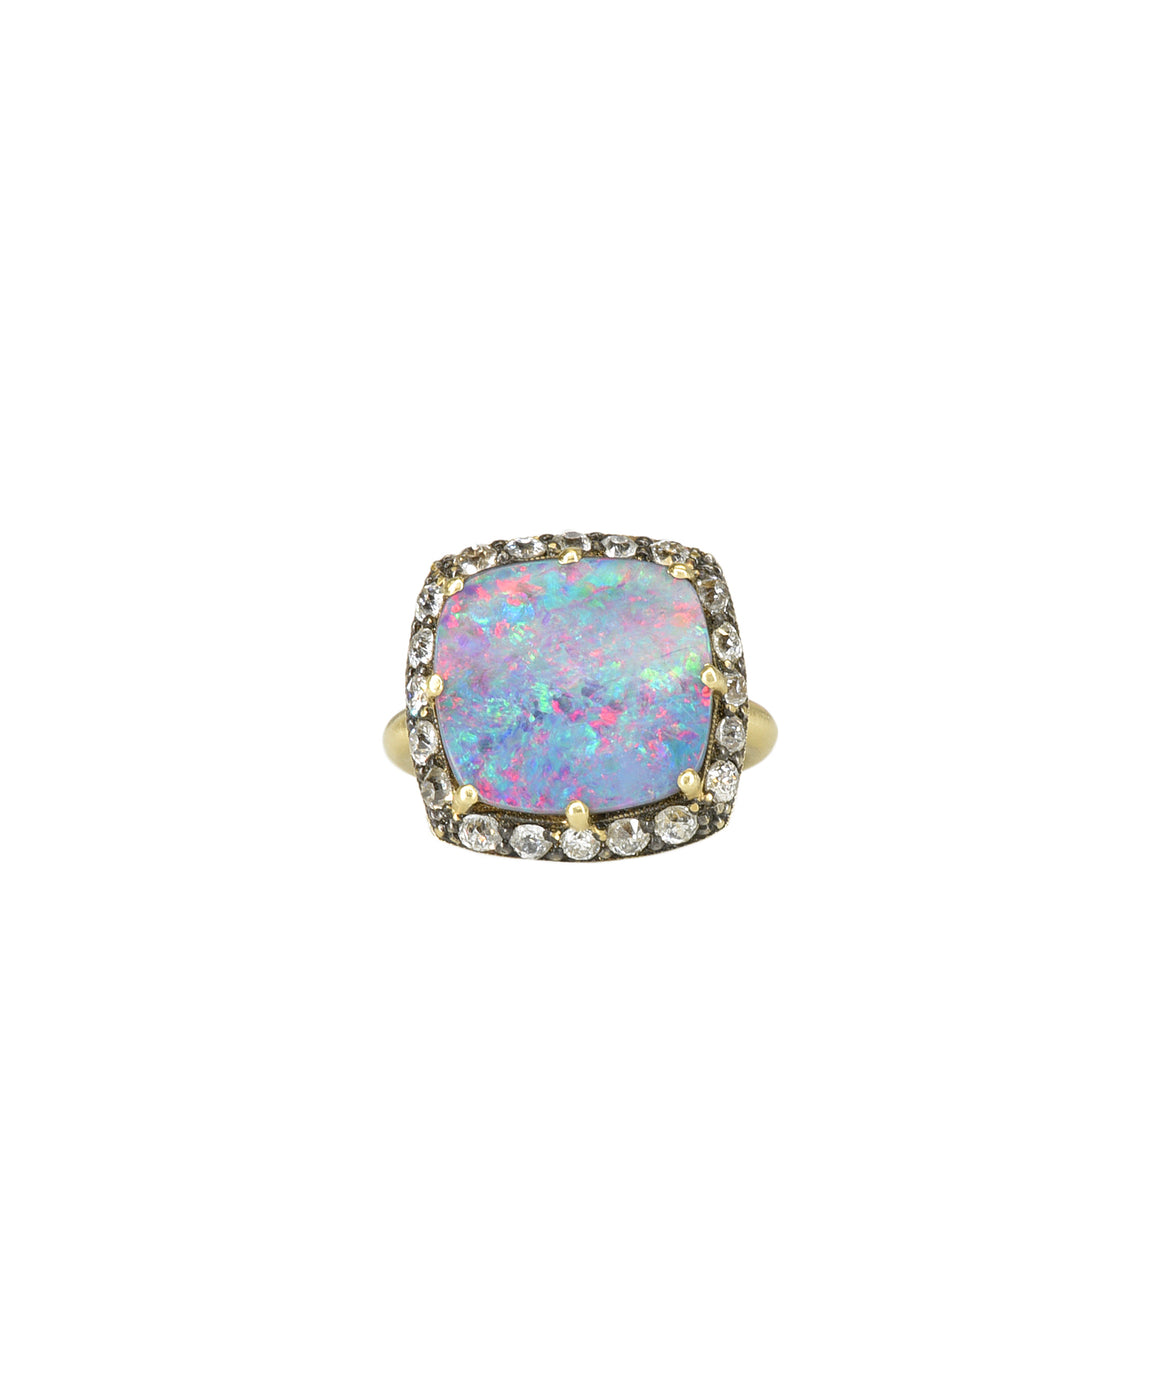 Opal ring with Old European cut diamonds